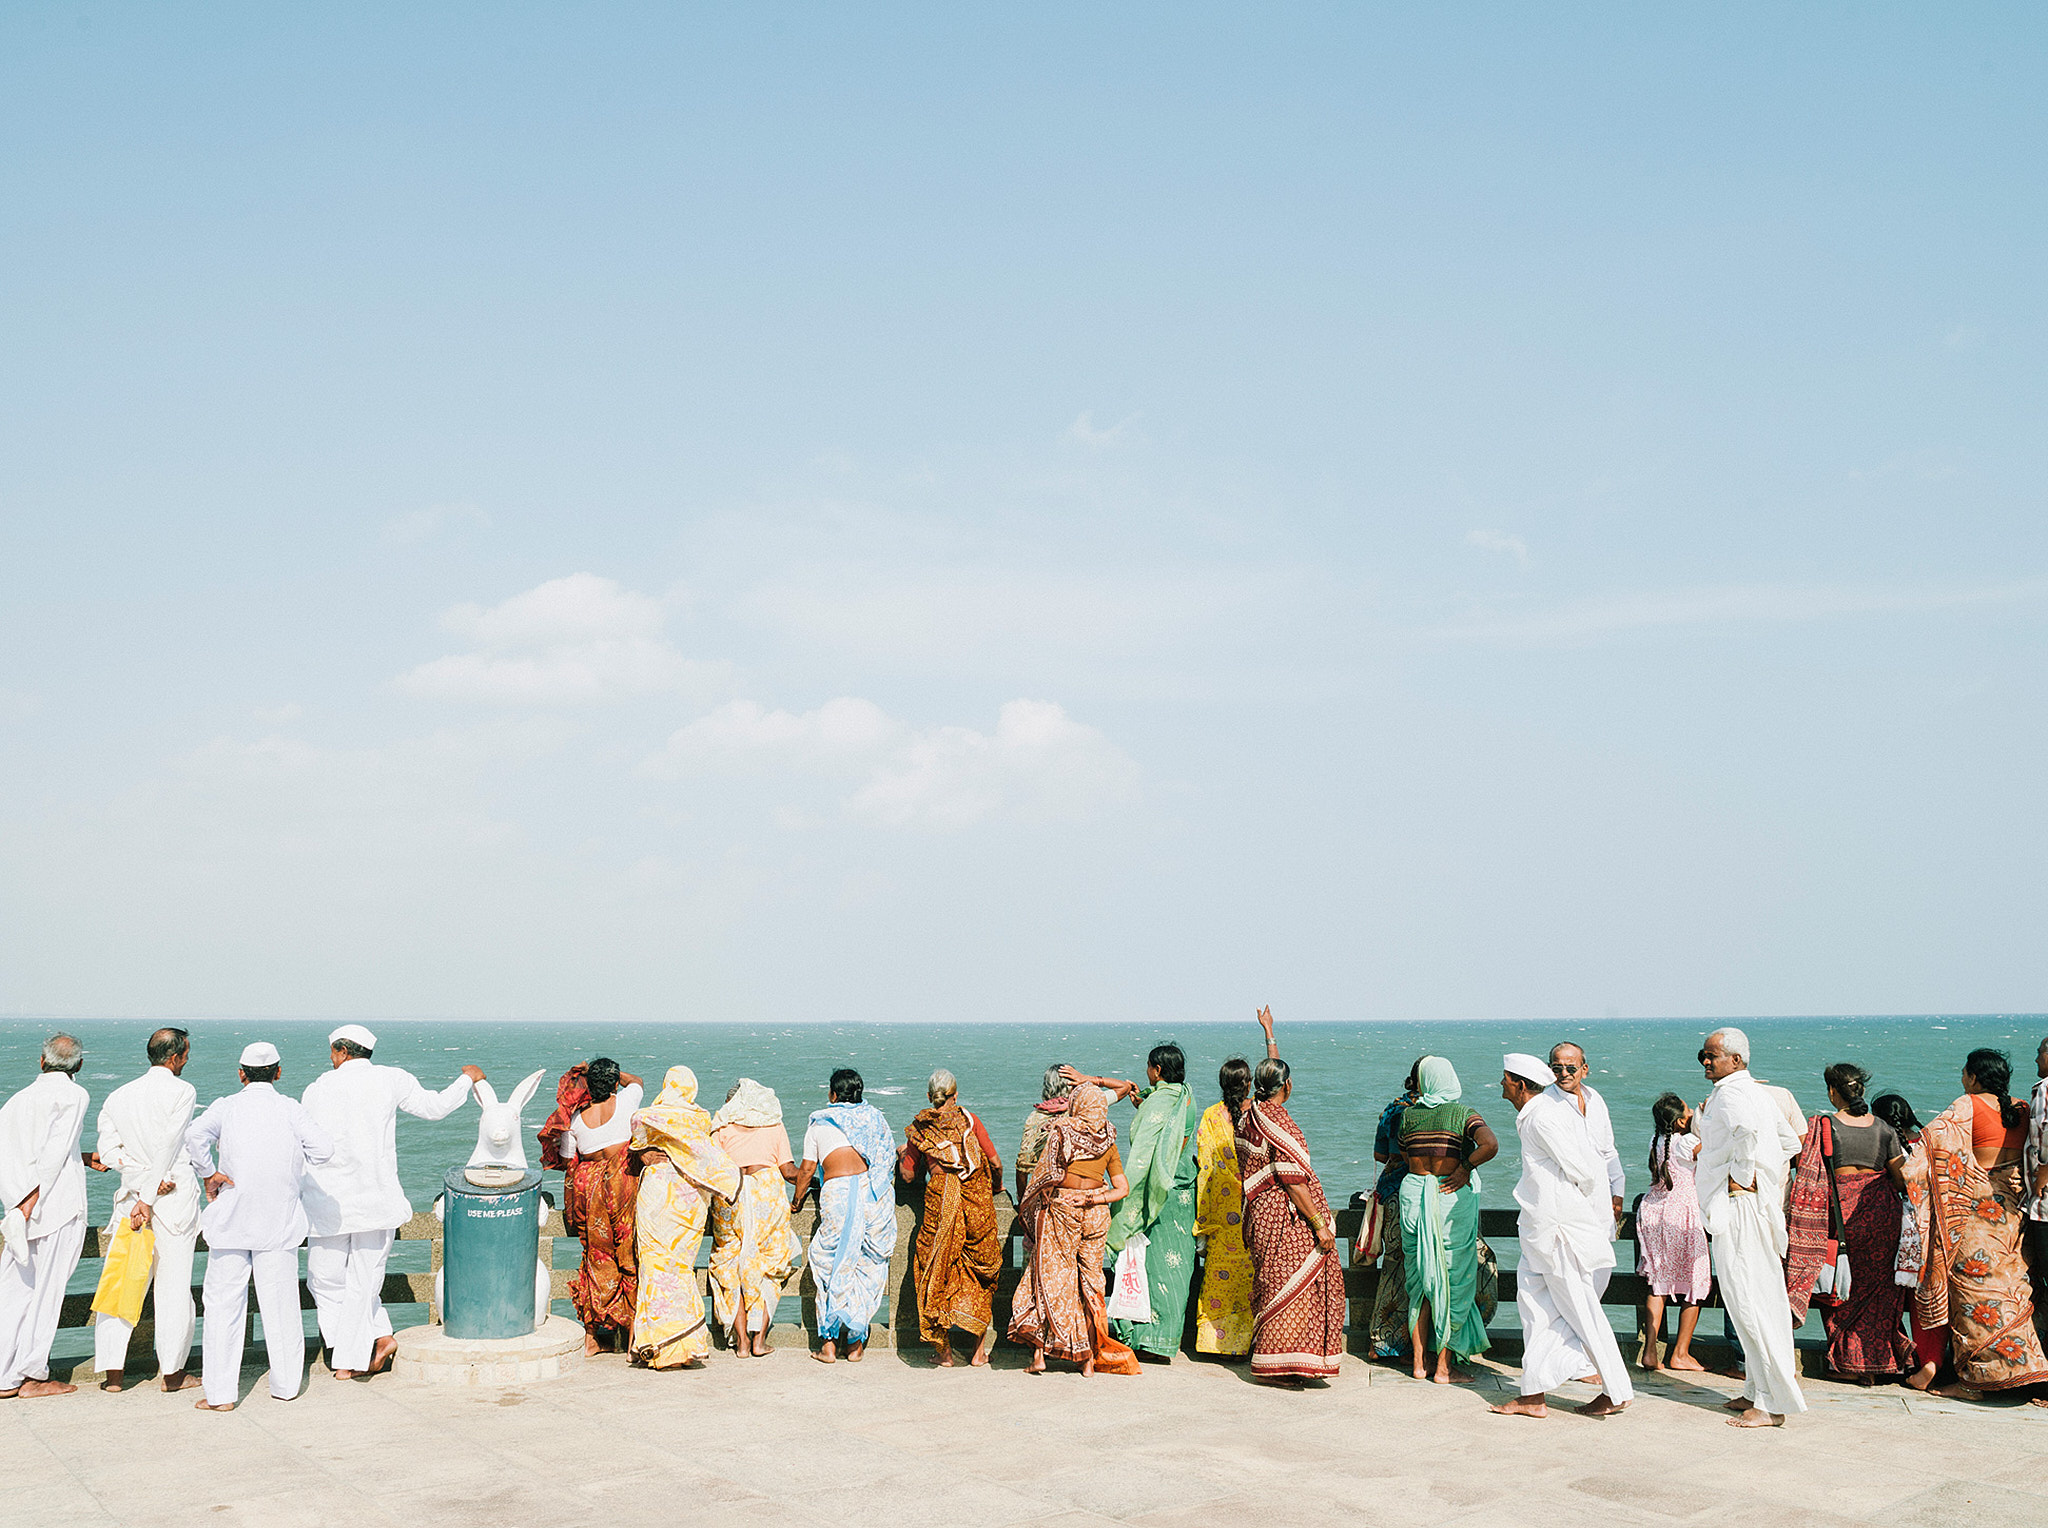 Indian People by the Sea